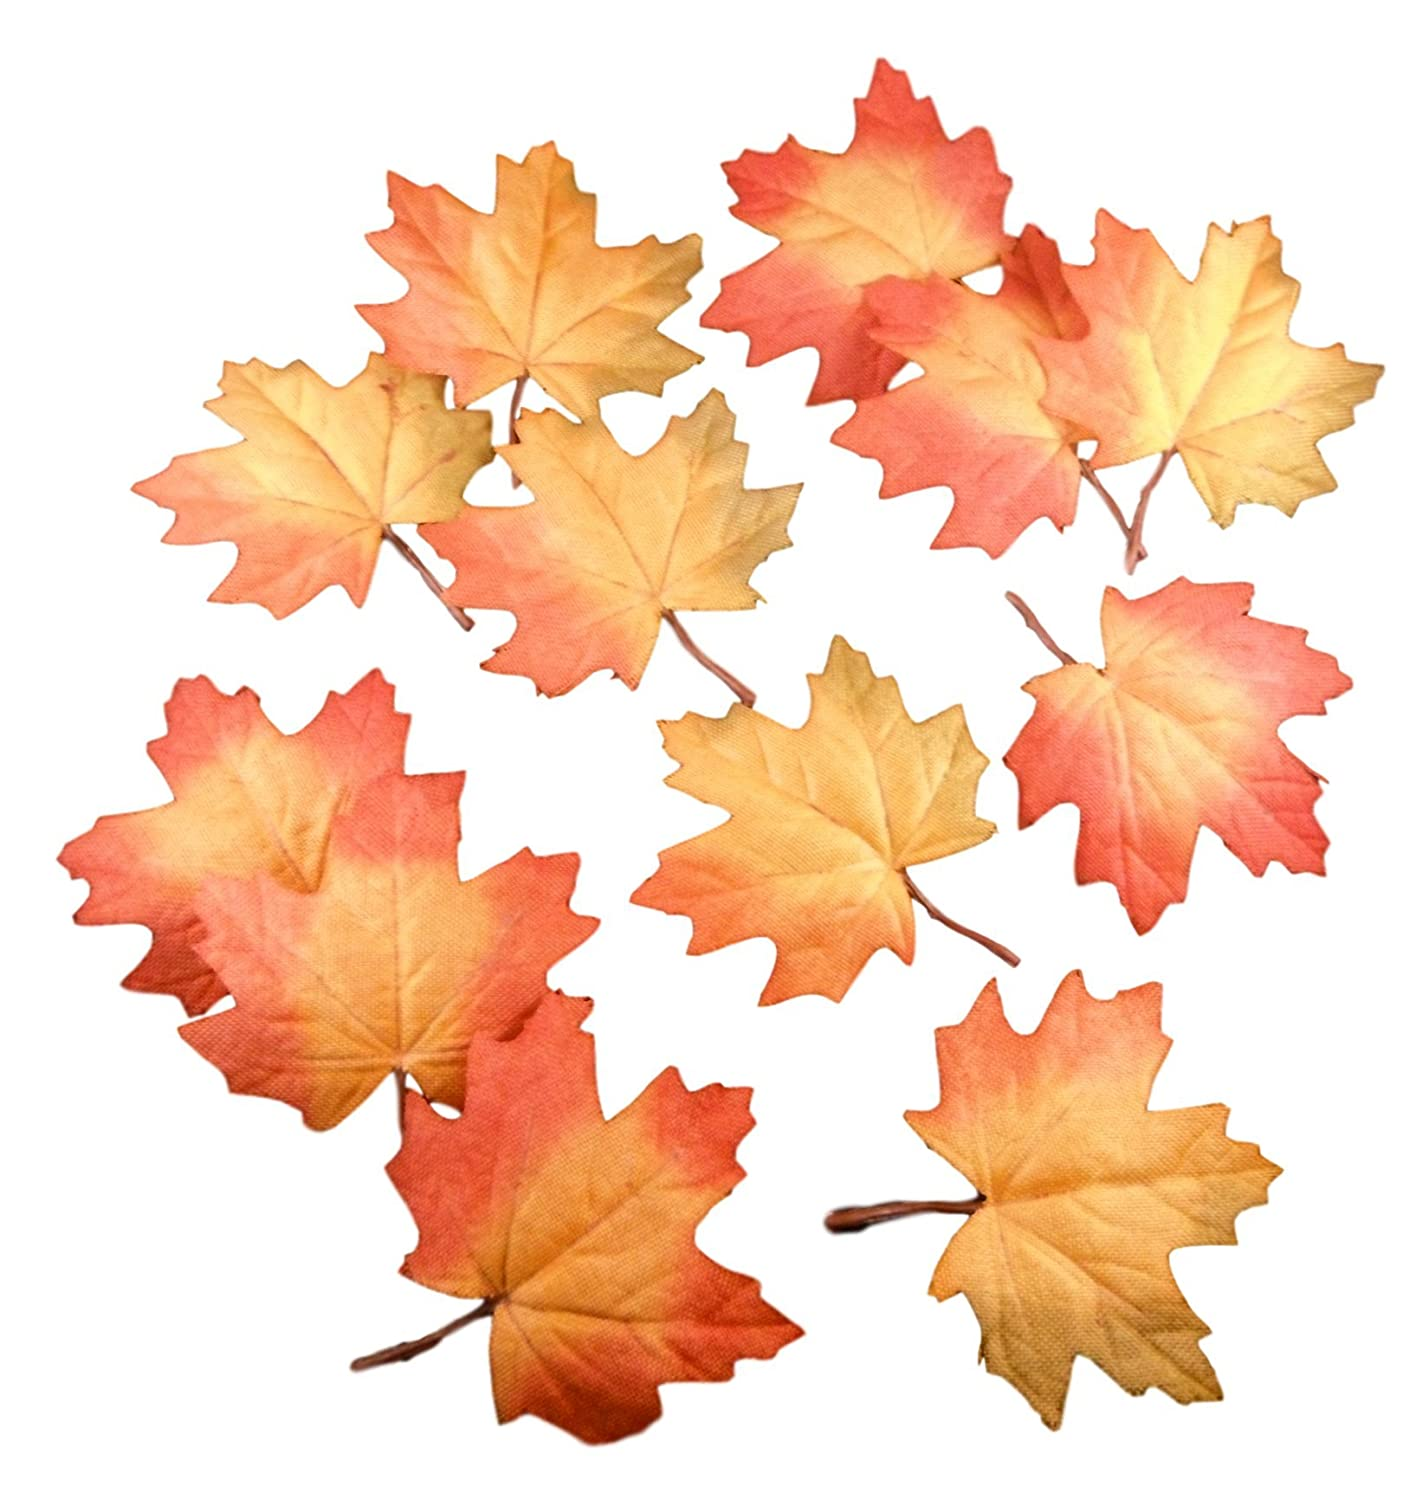 Harvest Craft Leaves - Artificial Floral Decor Foliage Packs (Textured Maple Leaf - 12 Pack)